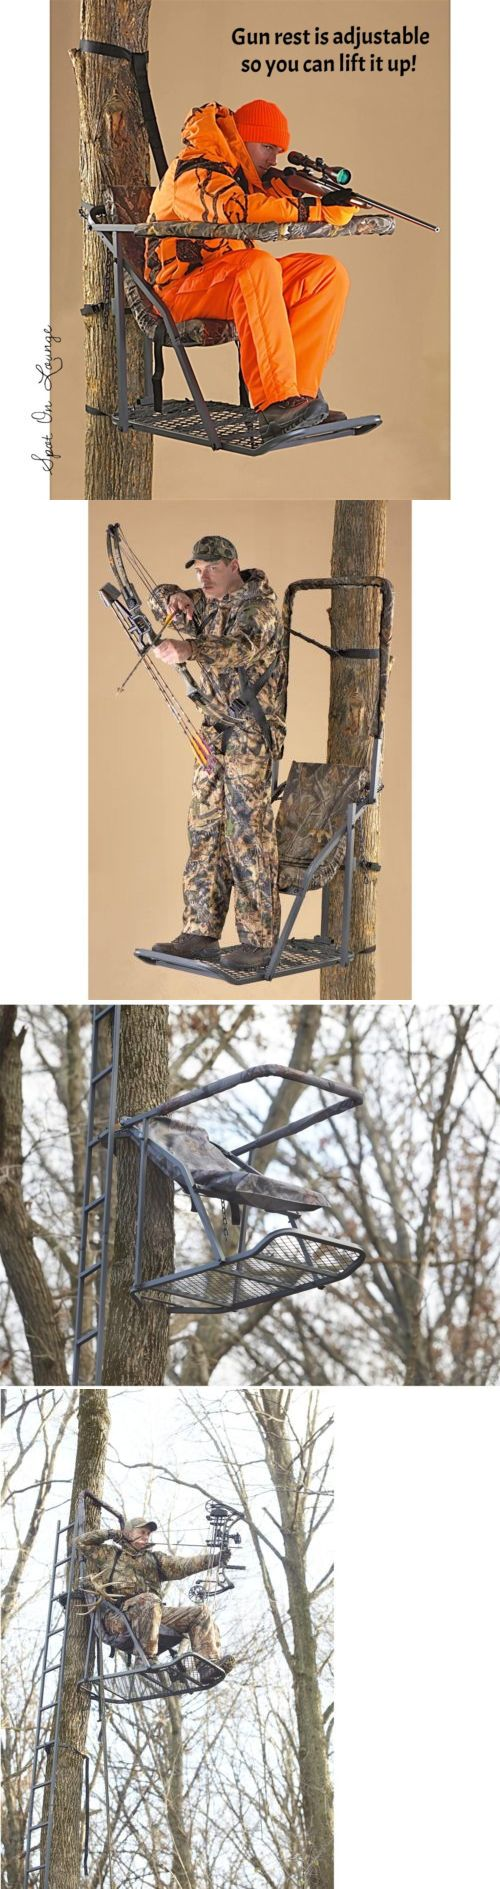 Tree Stands 52508: Adjust Hang On Hunting Treestand Seat Cushion Safety Harness Archery Gun Climber -> BUY IT NOW ONLY: $112.97 on eBay!